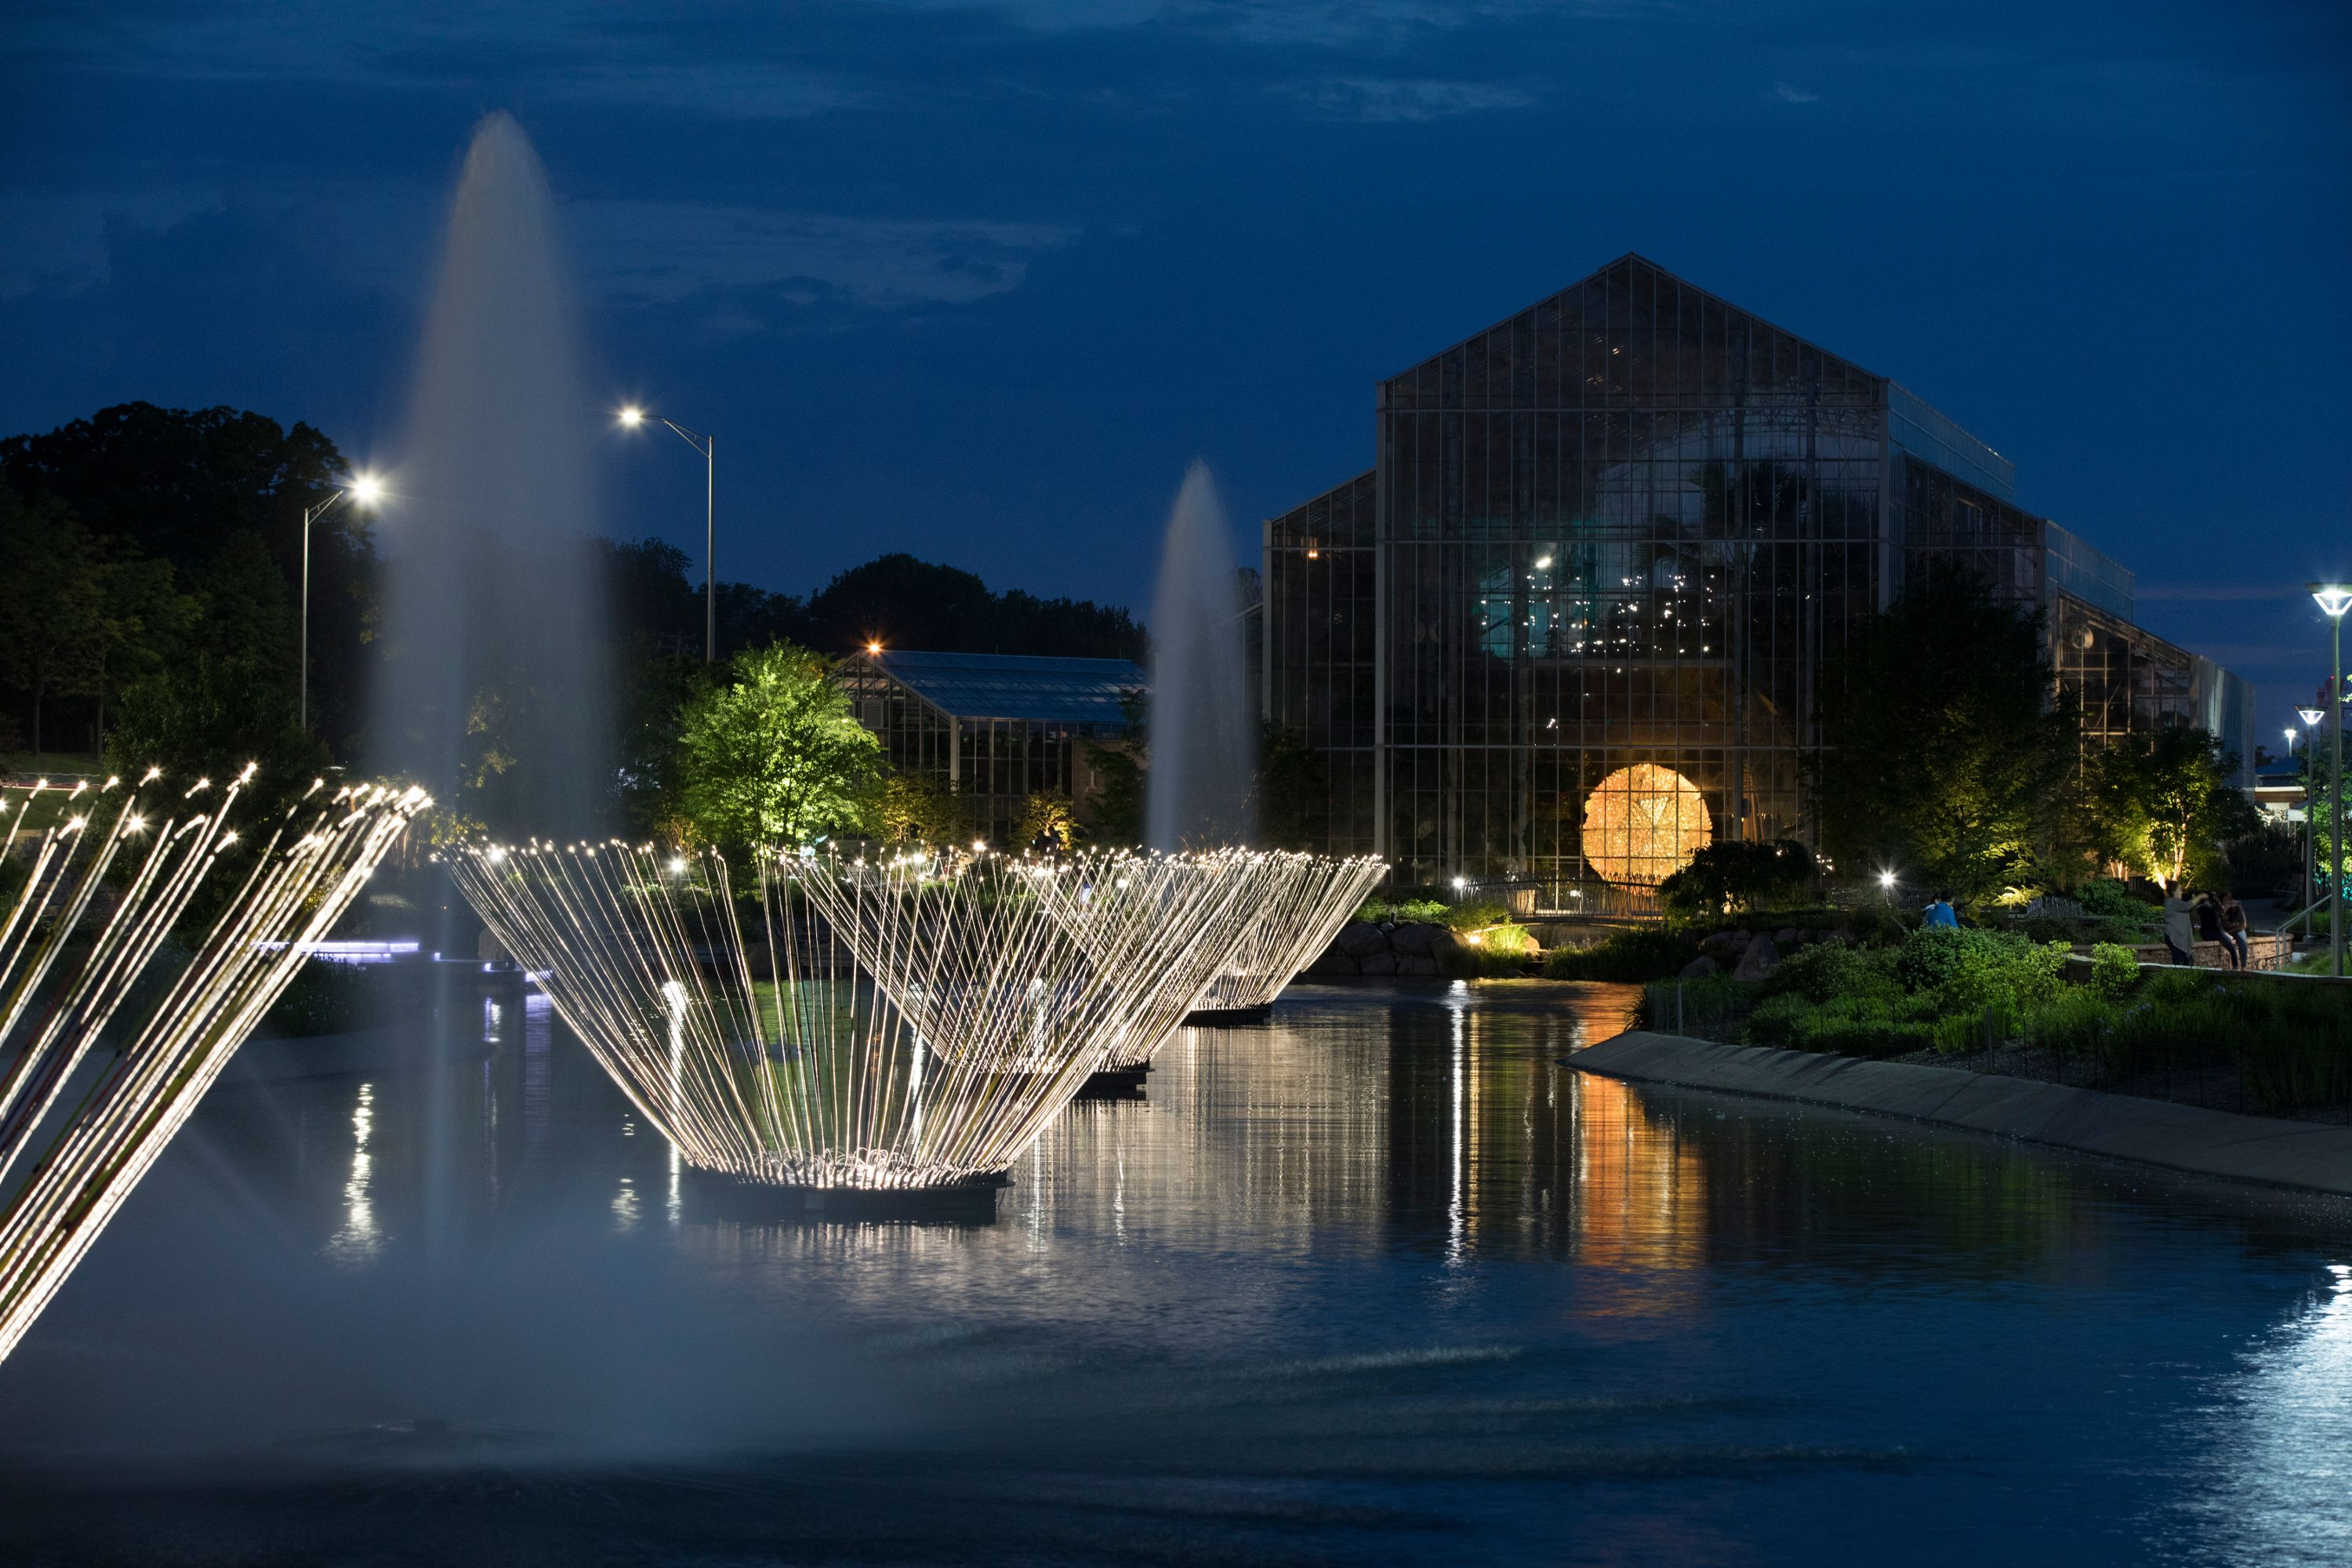 Bruce Munro Light Shines Throughout The Beautiful Nicholas Conservatory Gardens In Rockford